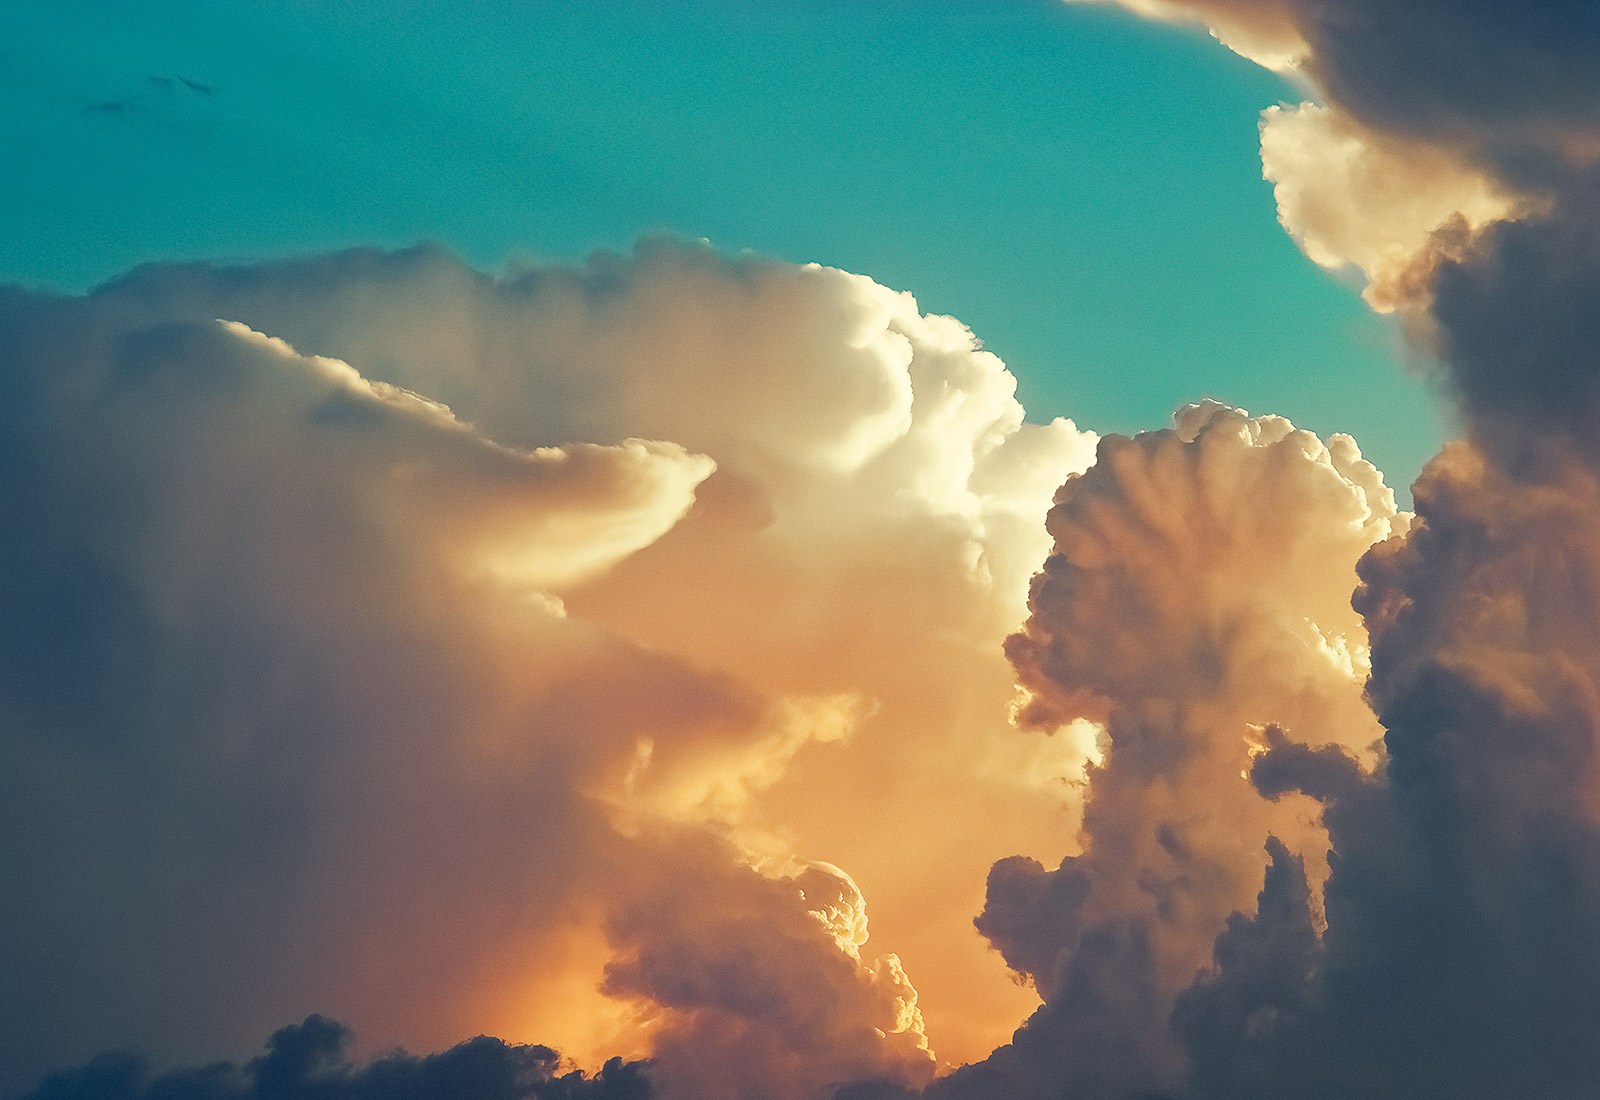 Thunderheads blow up in the Missouri evening sky